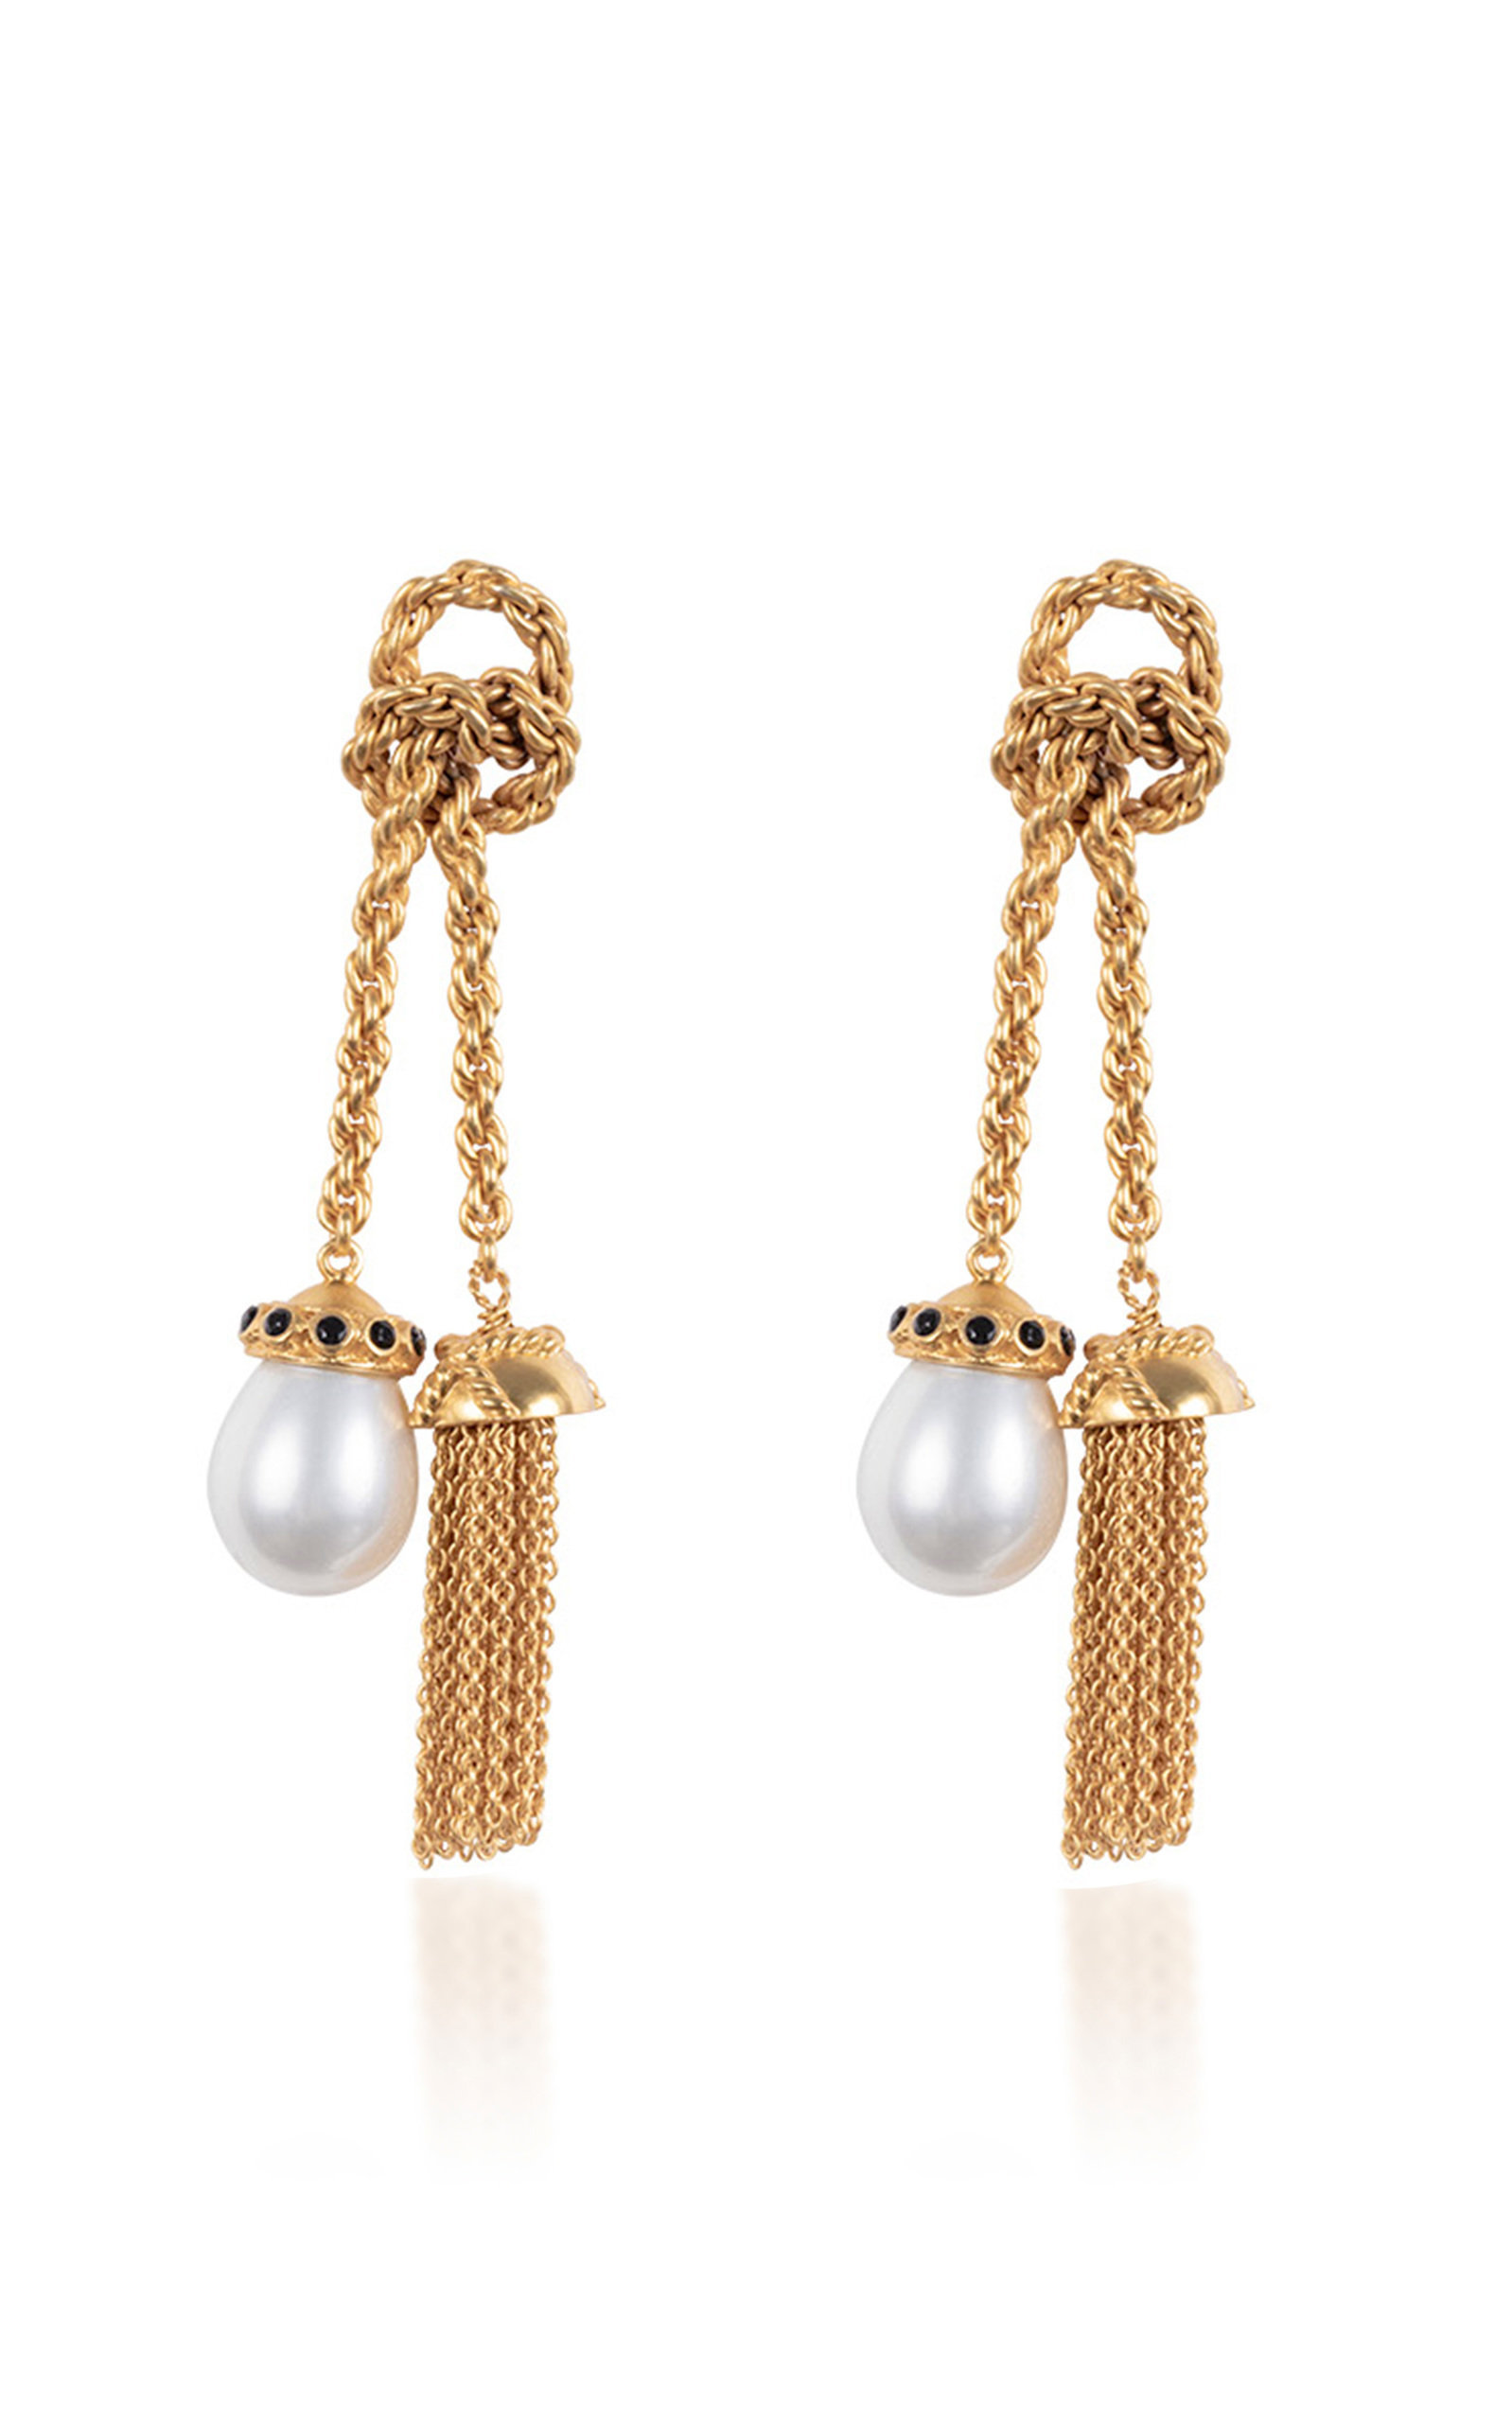 large_valere-gold-knotted-earrings.jpg